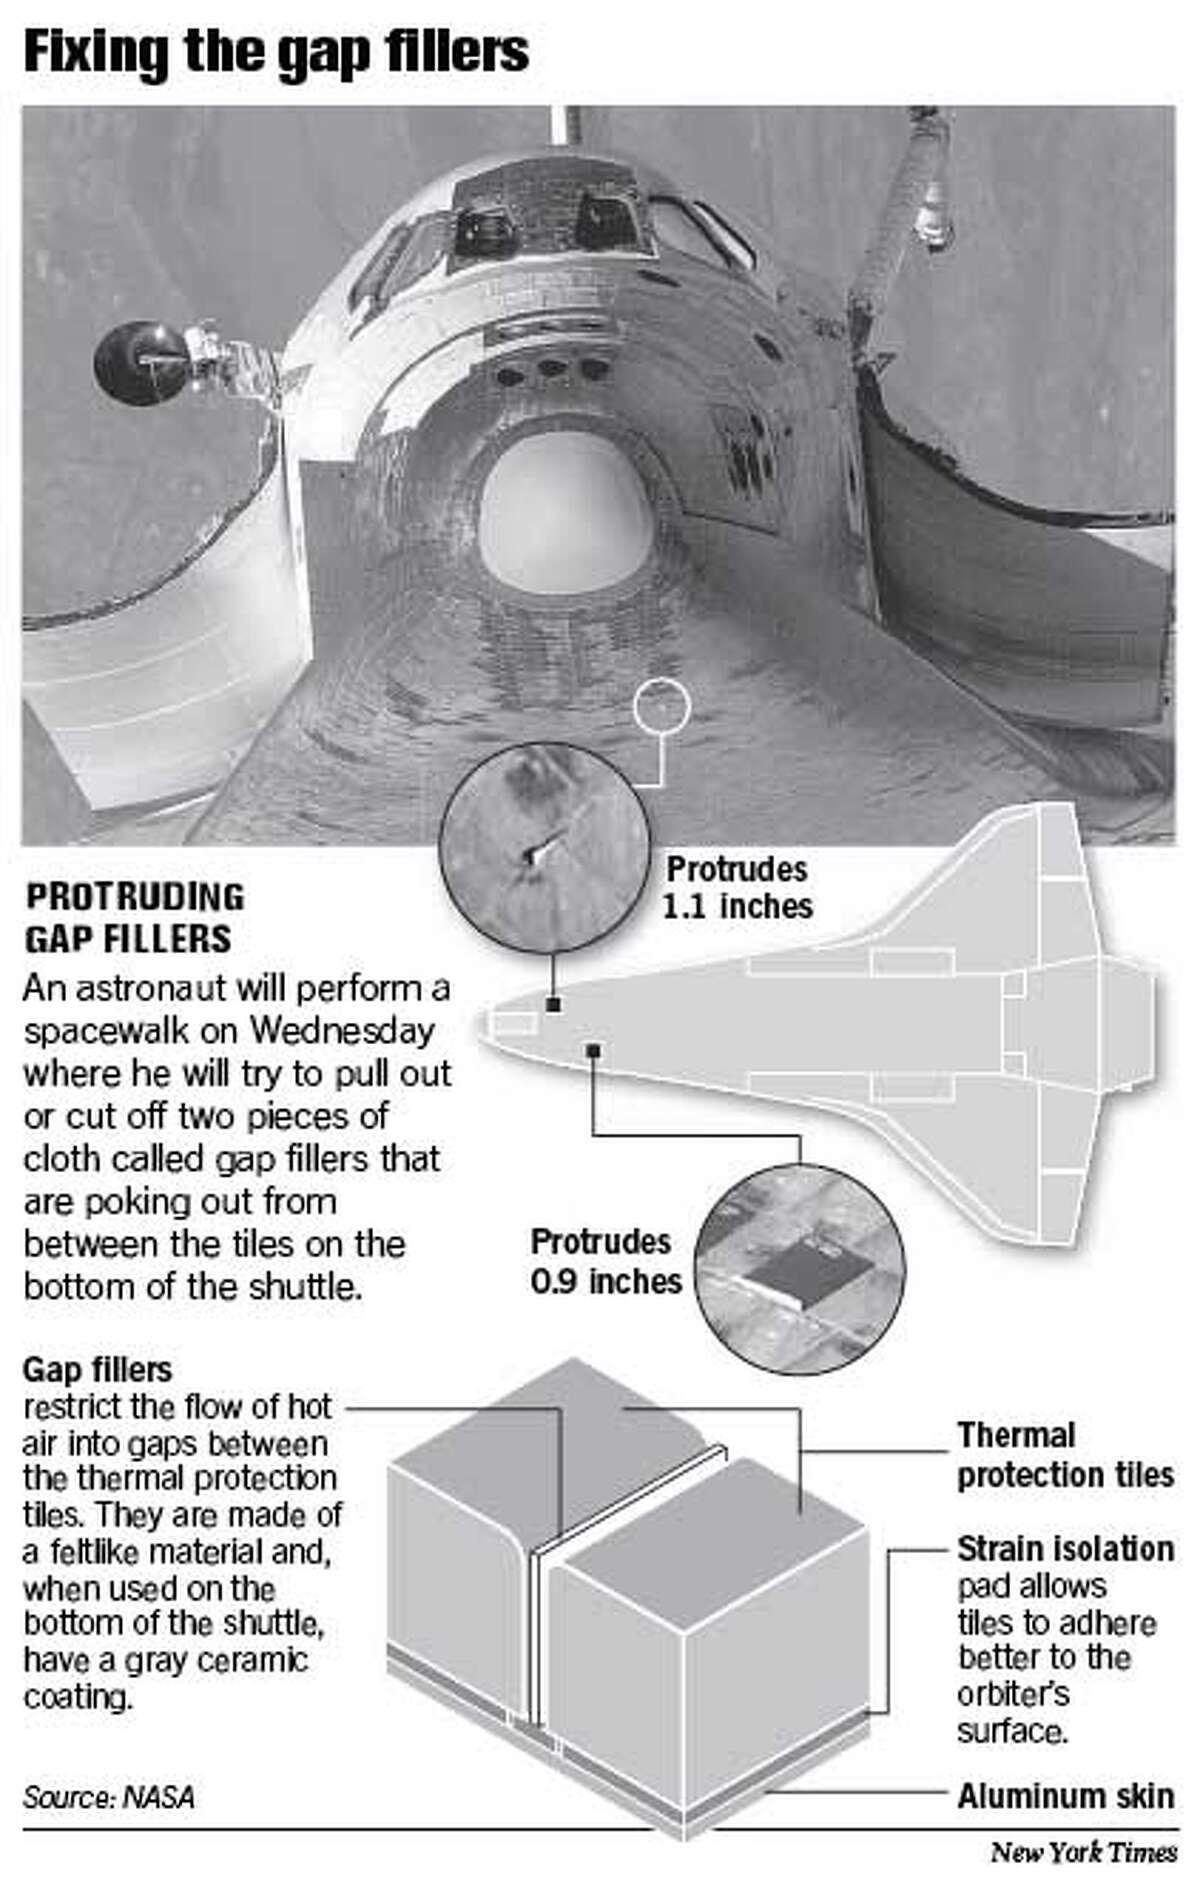 Fixing the Gap Fillers. New York Times Graphic